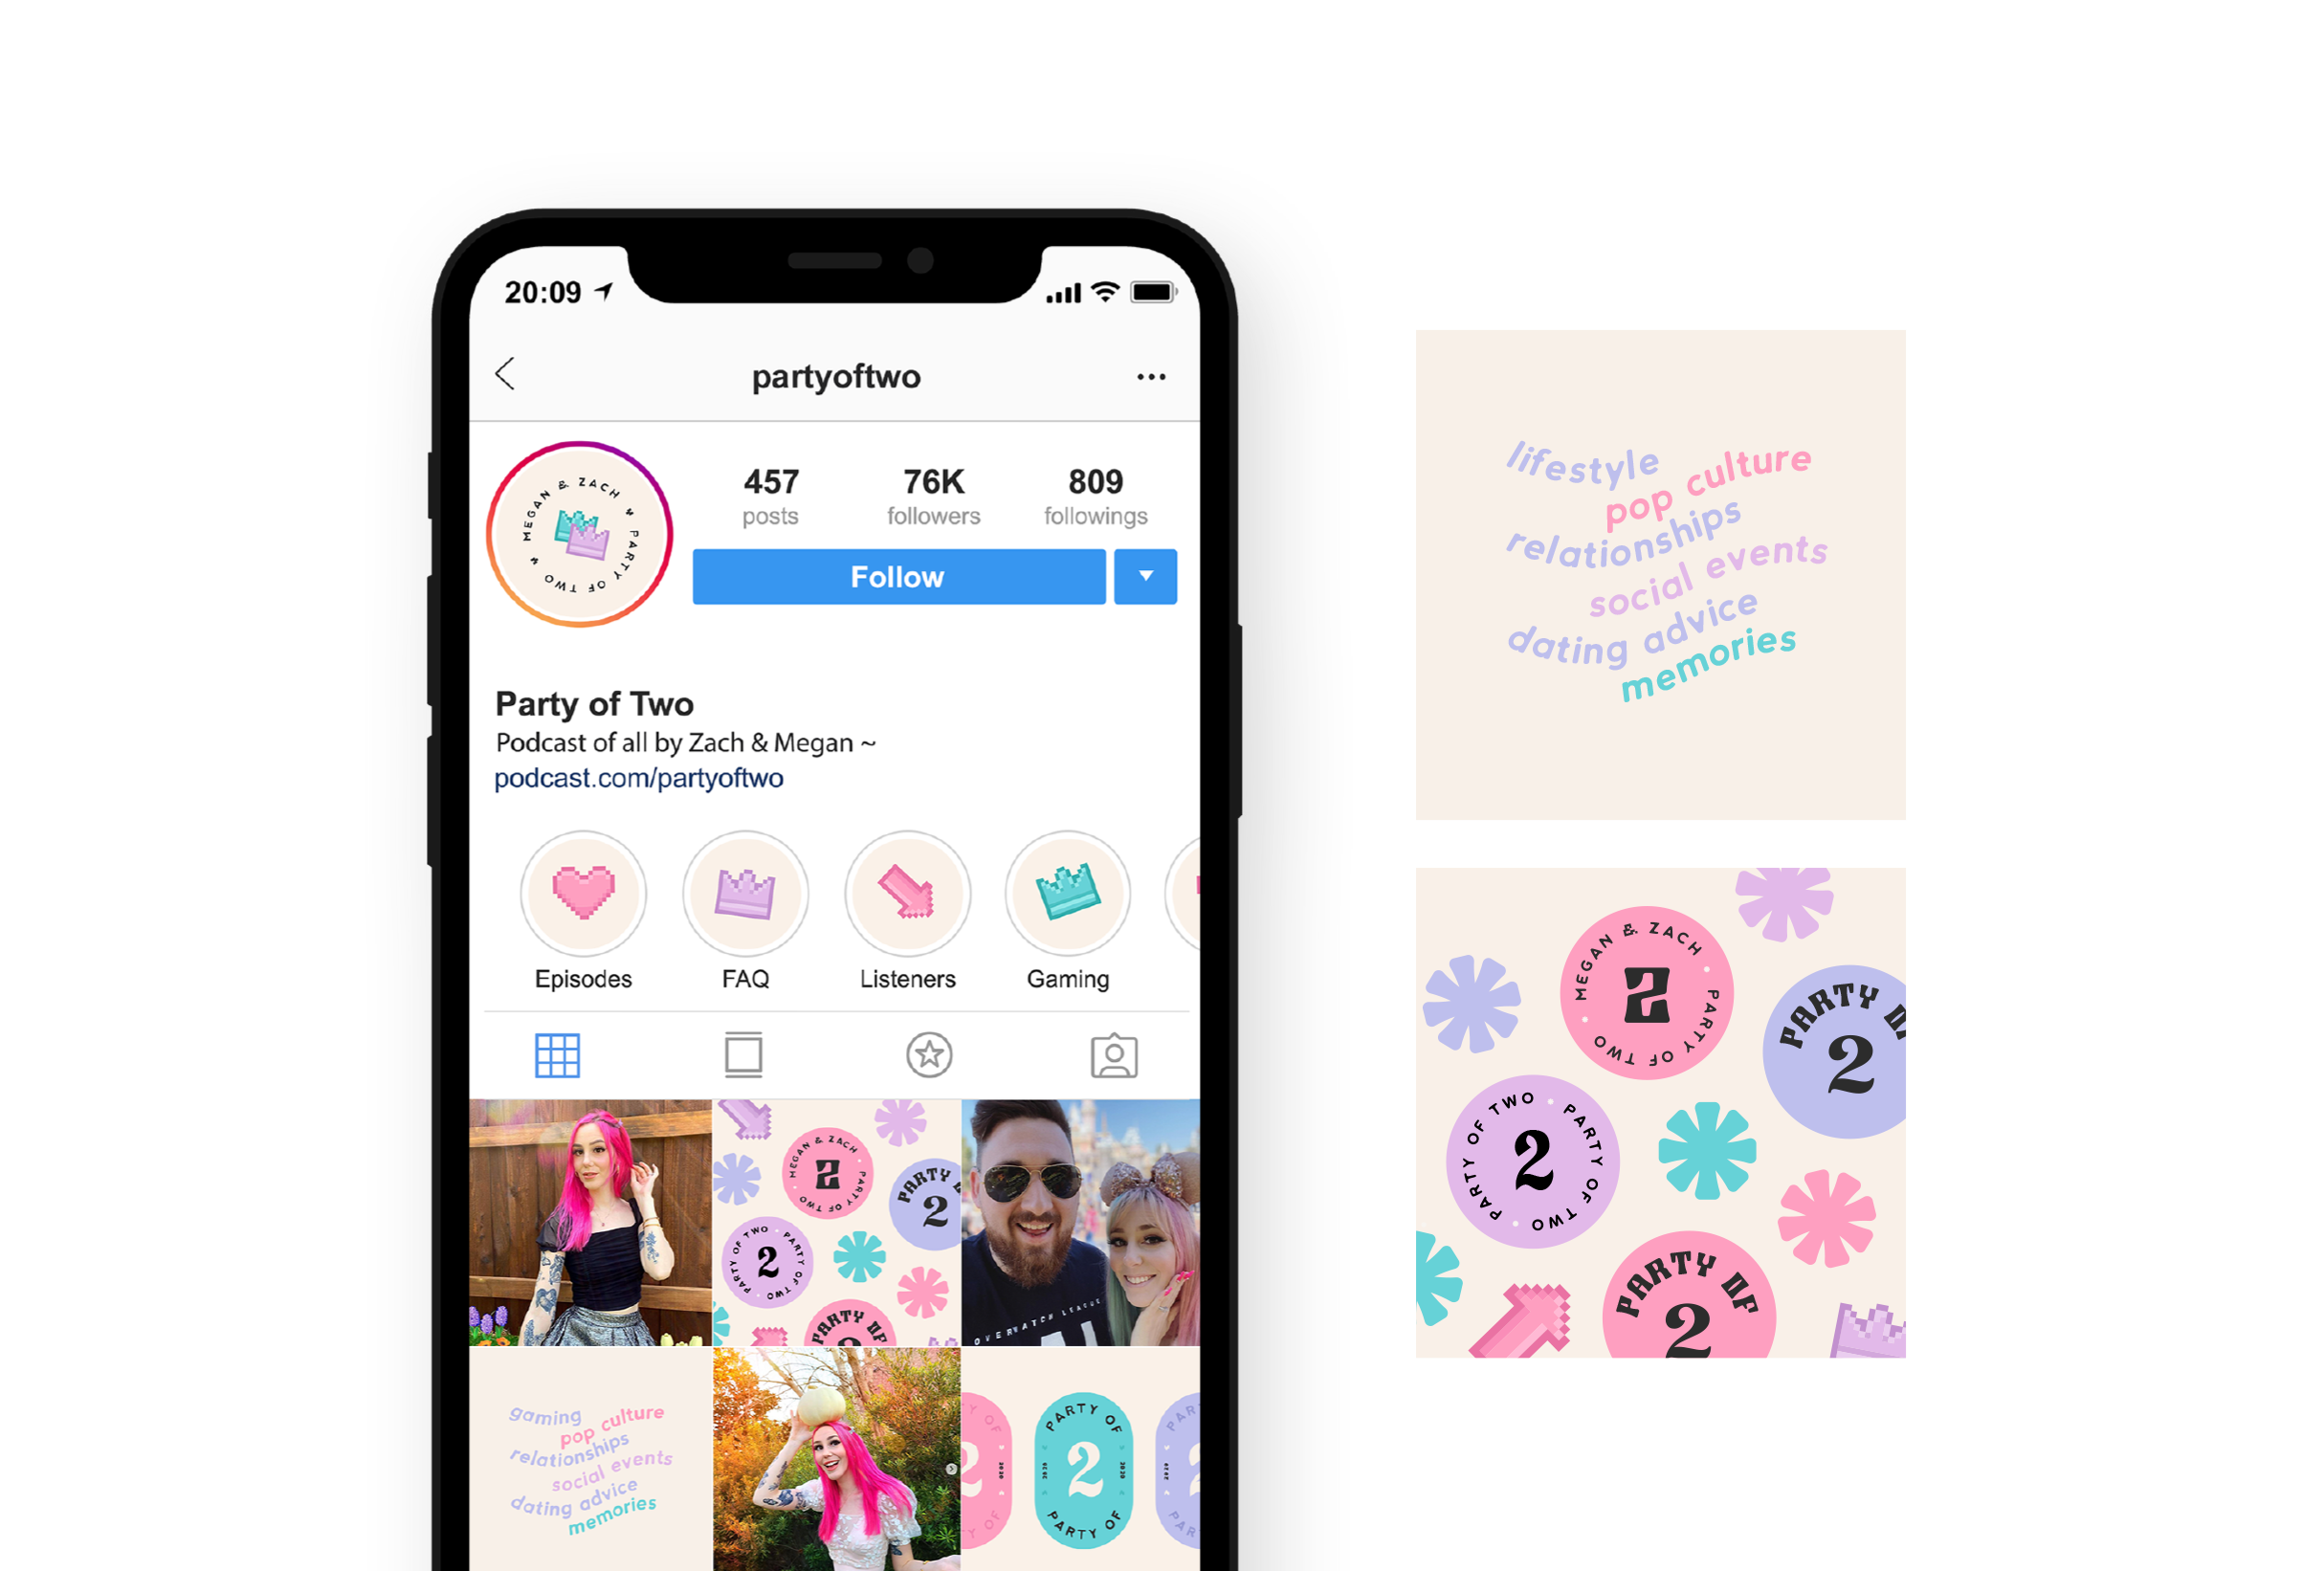 Instagram templates for Party of Two, Podcast by gaming couple Megan and Zach, discussing their lives, popular culture and social events - designed by Wiltshire-based graphic designer, Kaye Huett